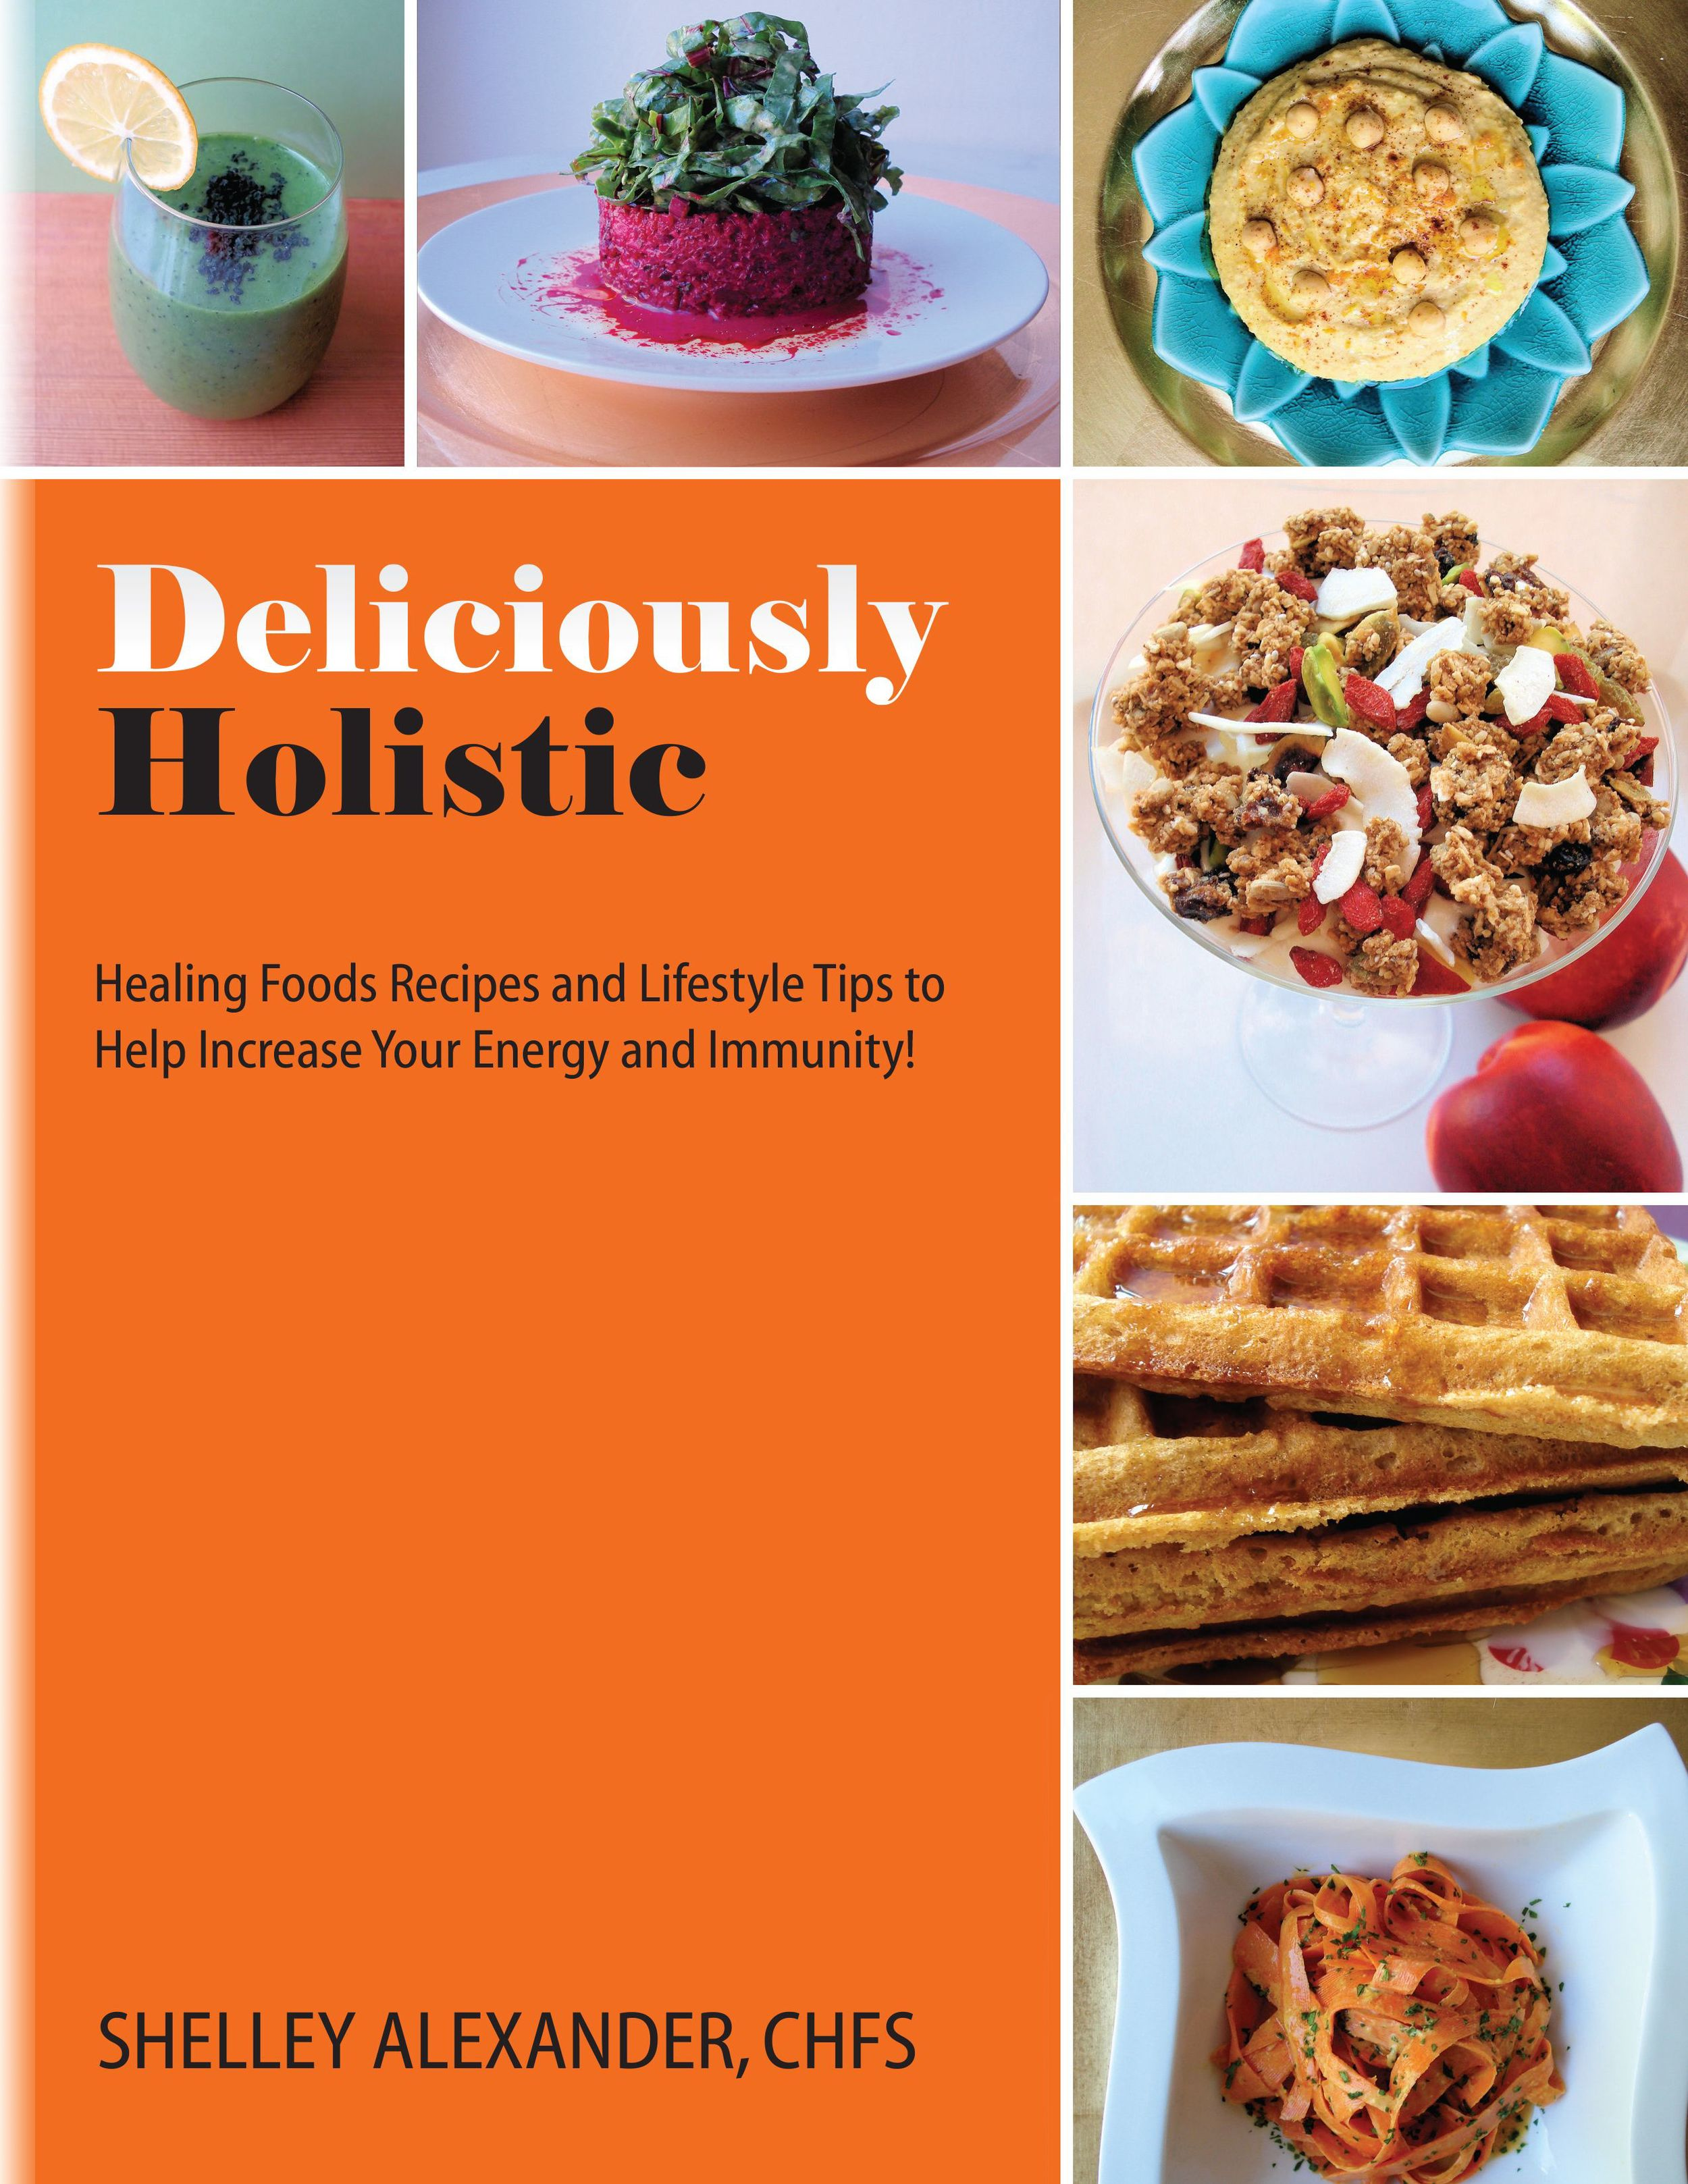 Deliciously Holistic JPG Front cover.jpg